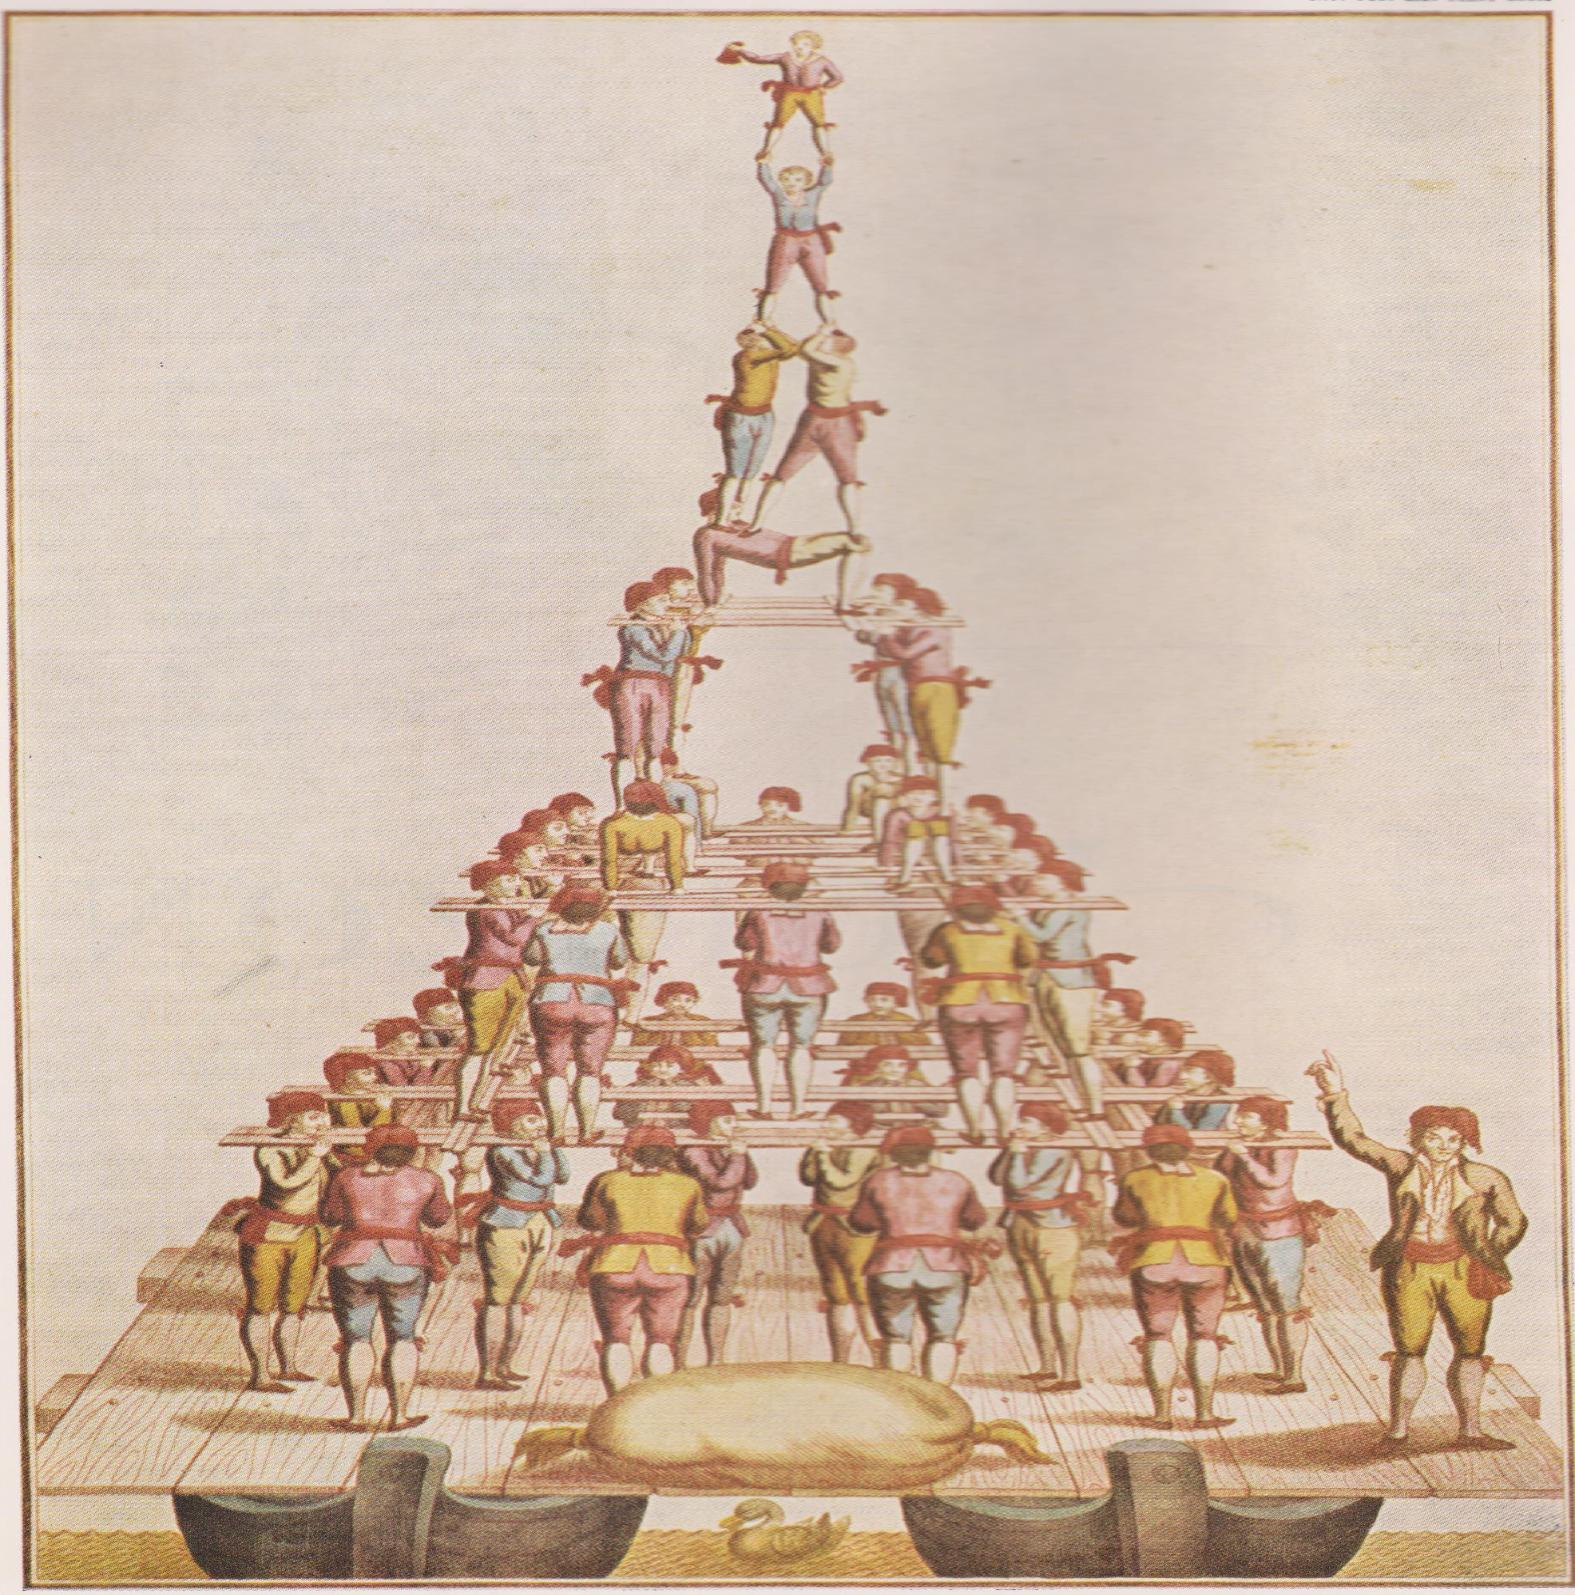 Bunch of little men in a pyramid holding up wisdomgame